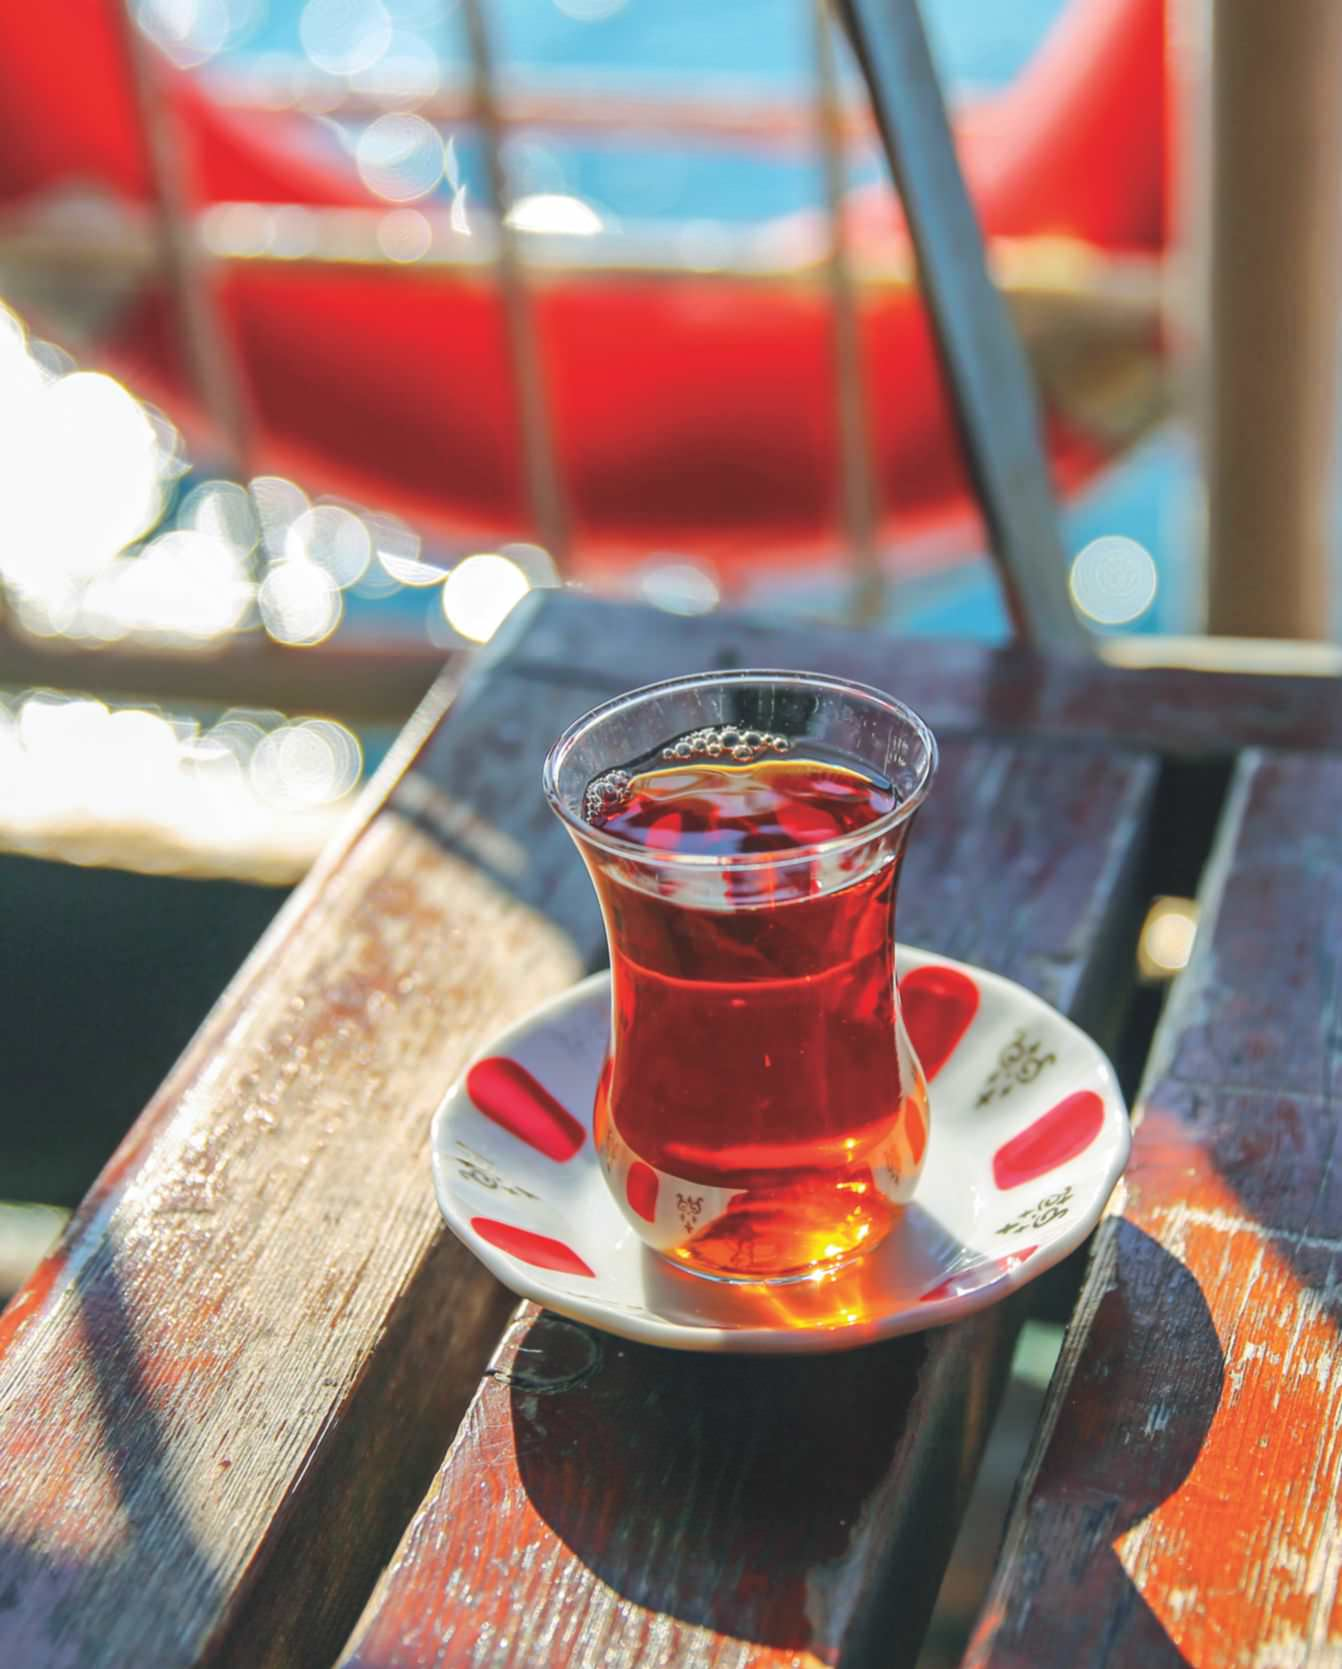 Tea From Turkey, With Love